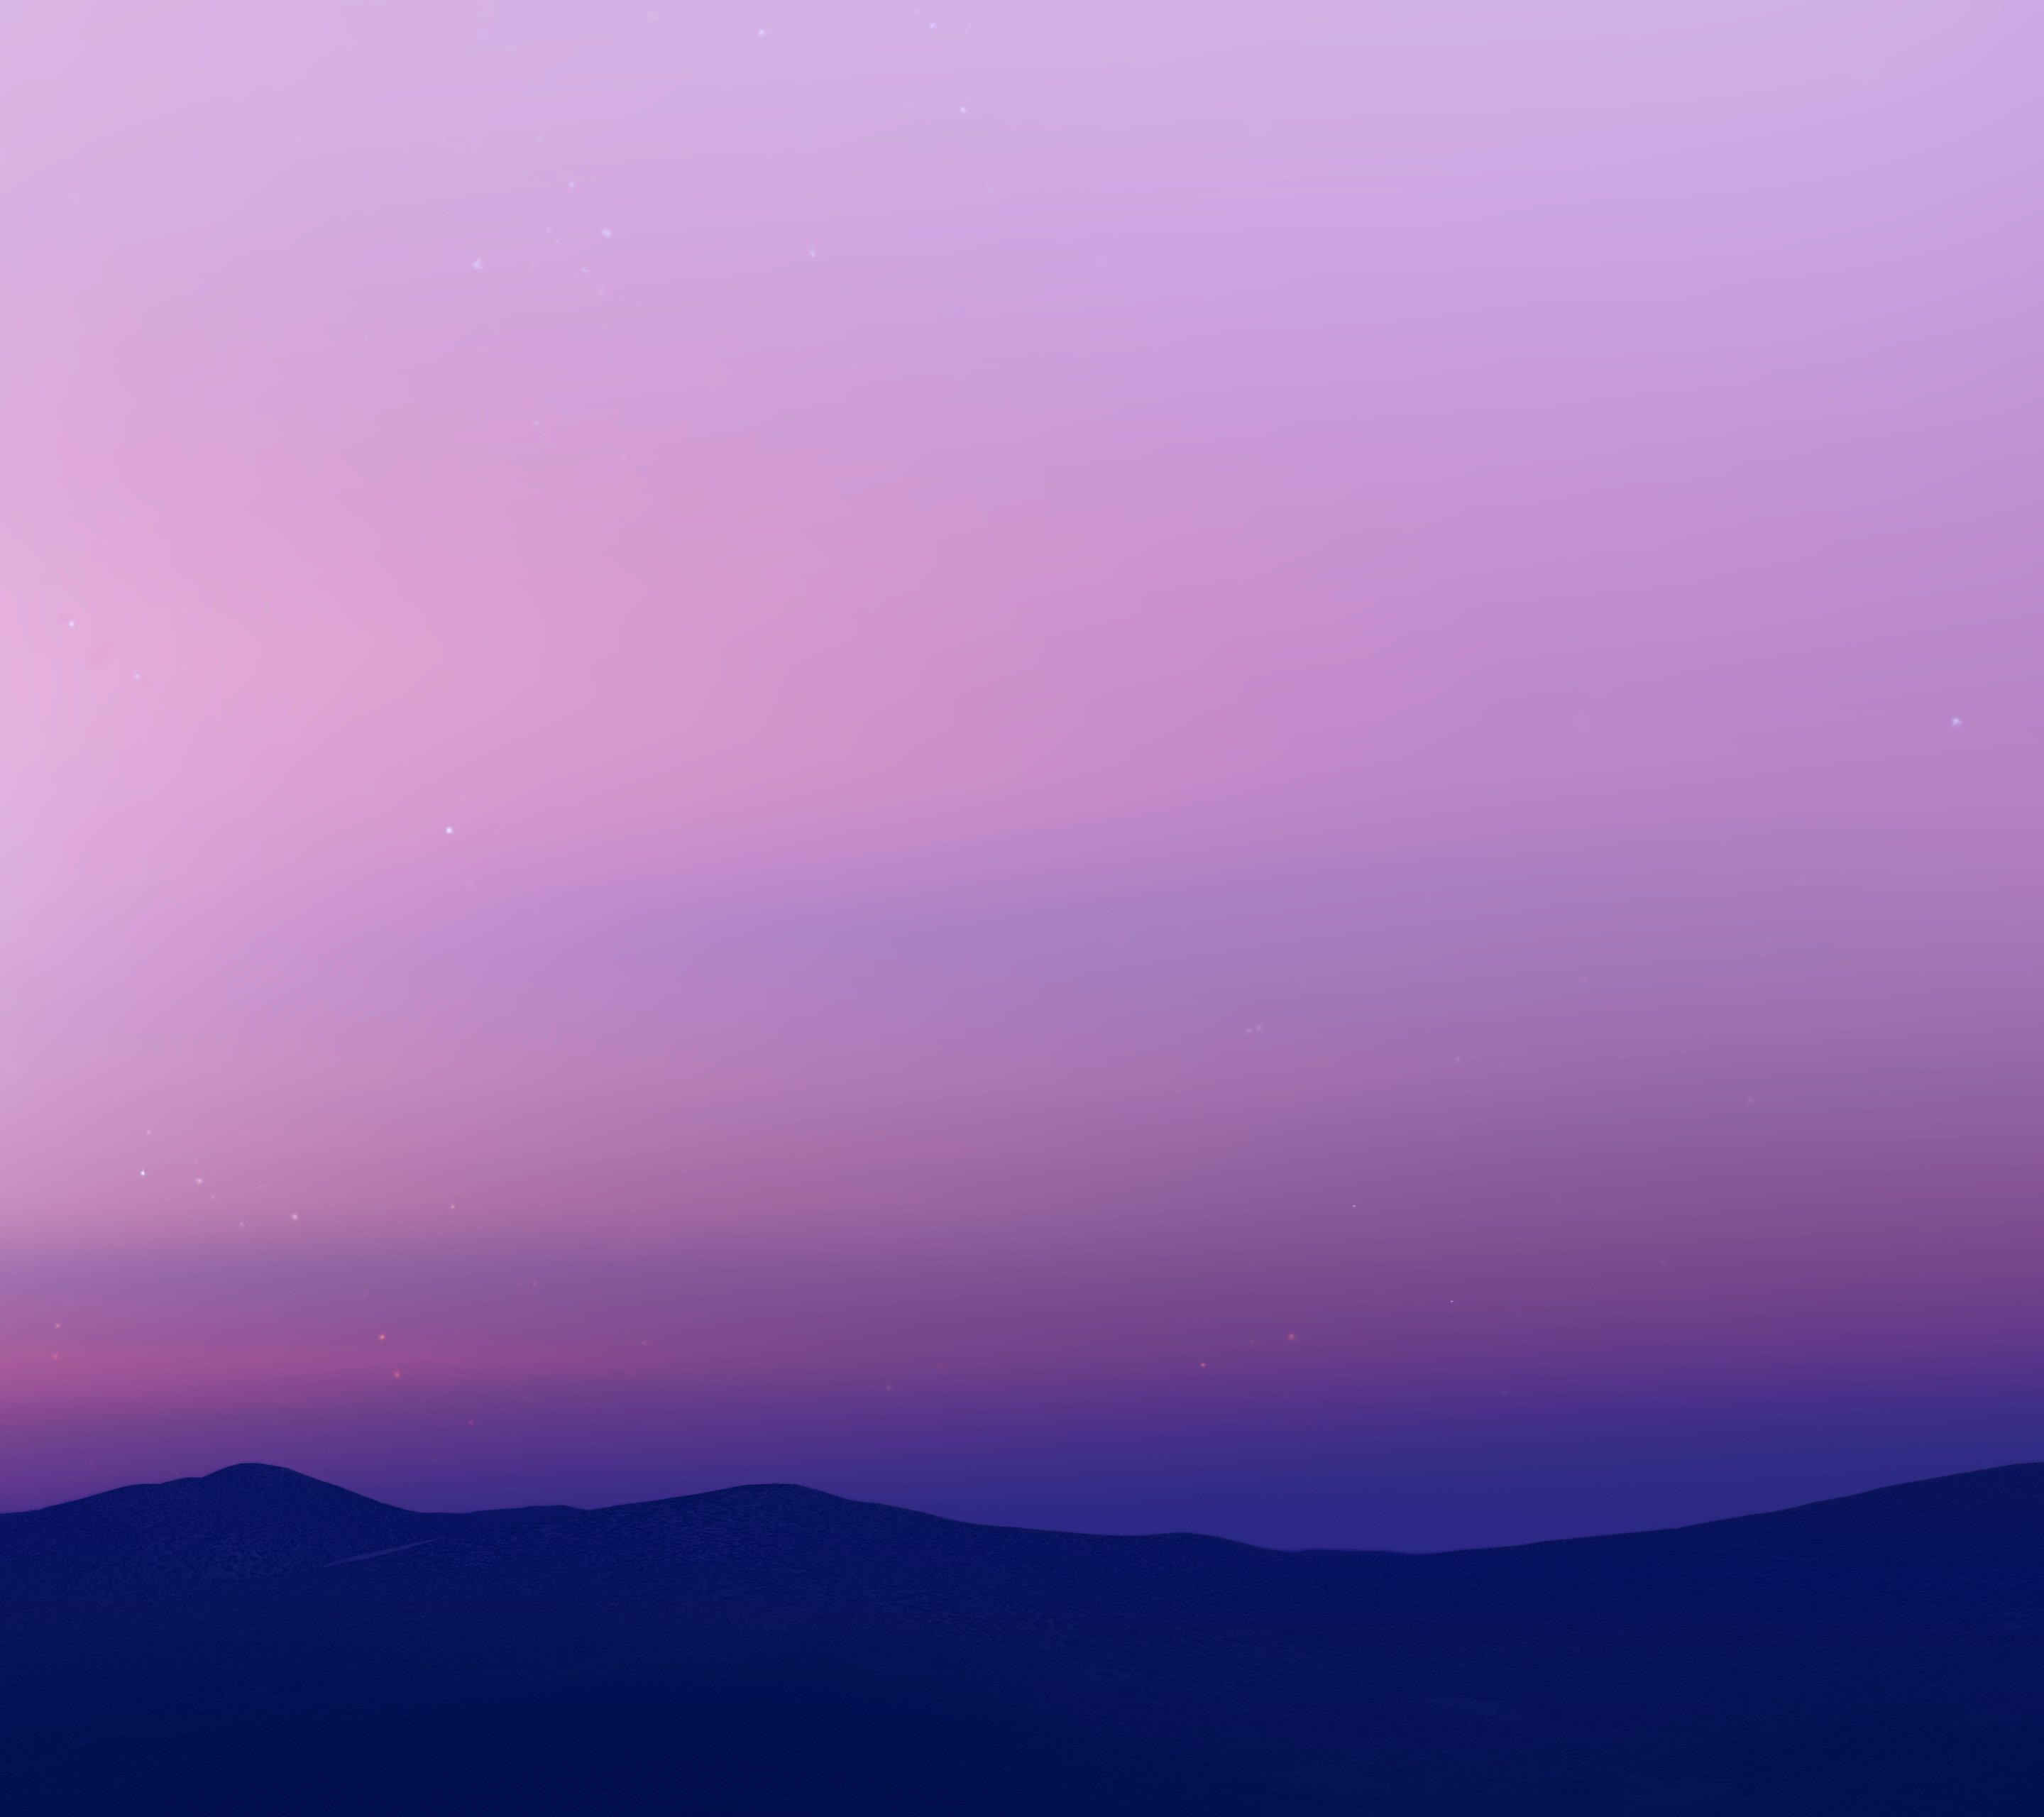 android n wallpaper - blue/purple color — gizmo bolt - exposing